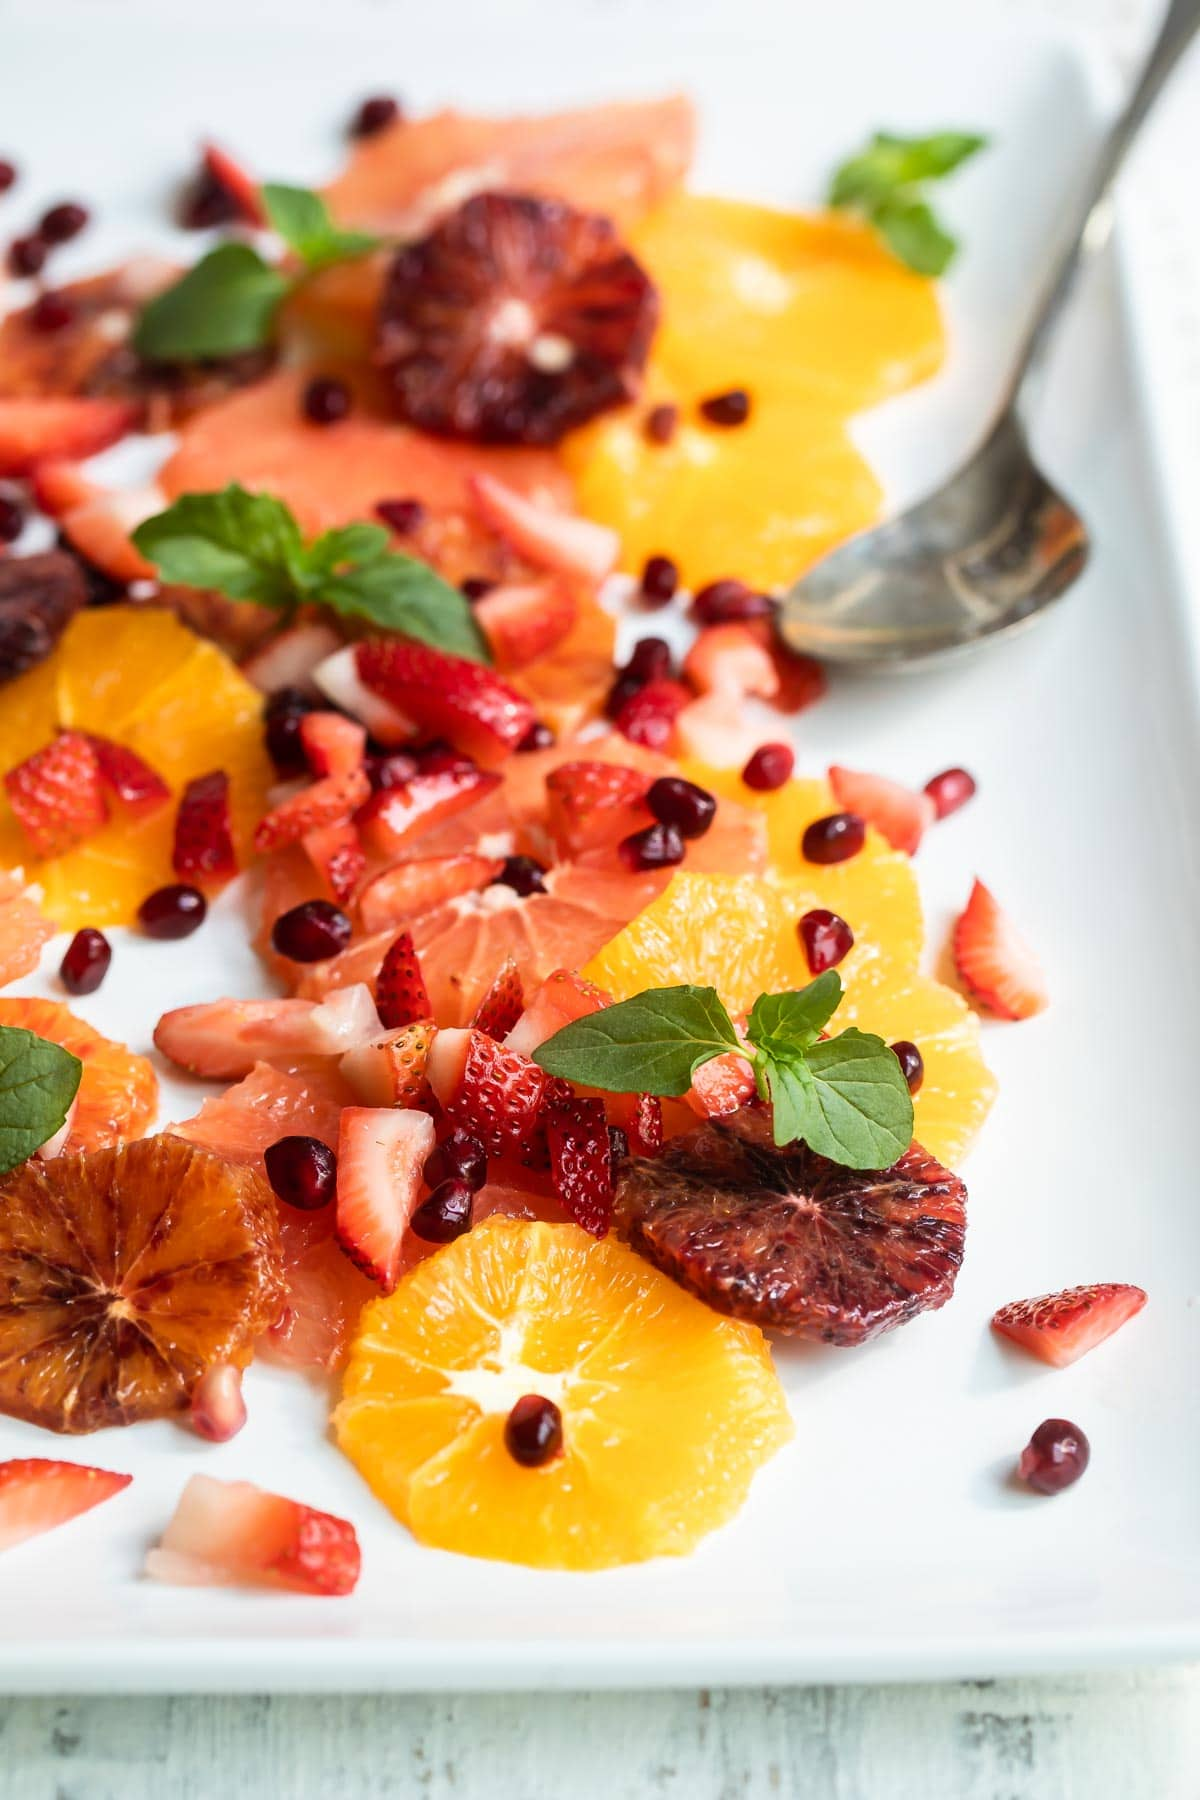 Citrus salad on a white plate.